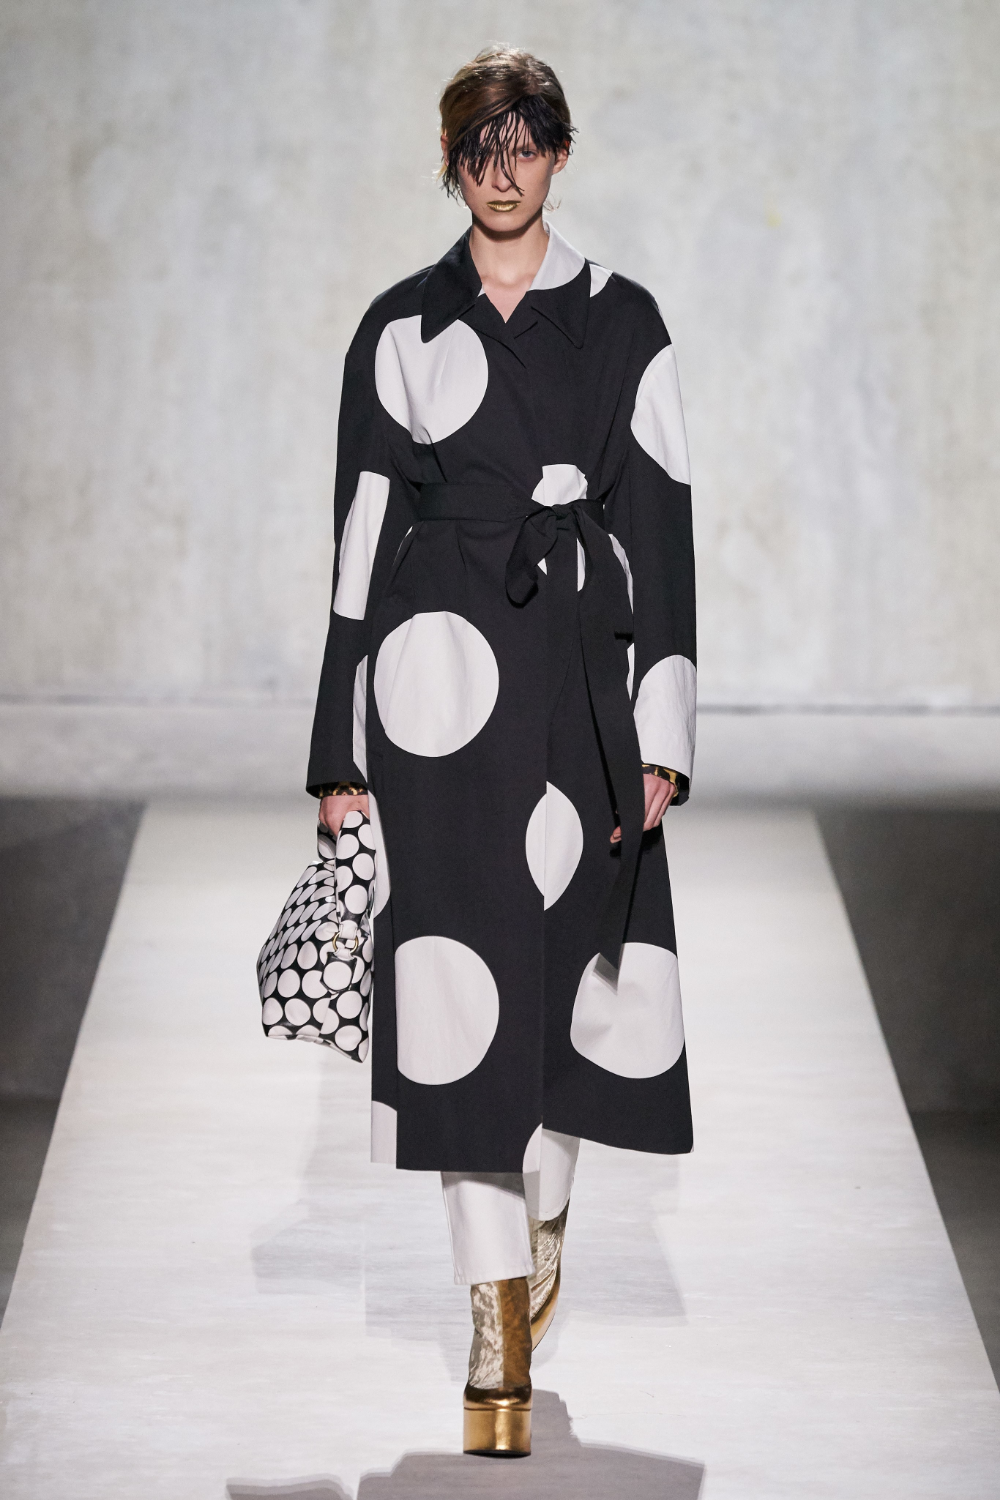 Image result for dries van noten spring 2020 polka dots